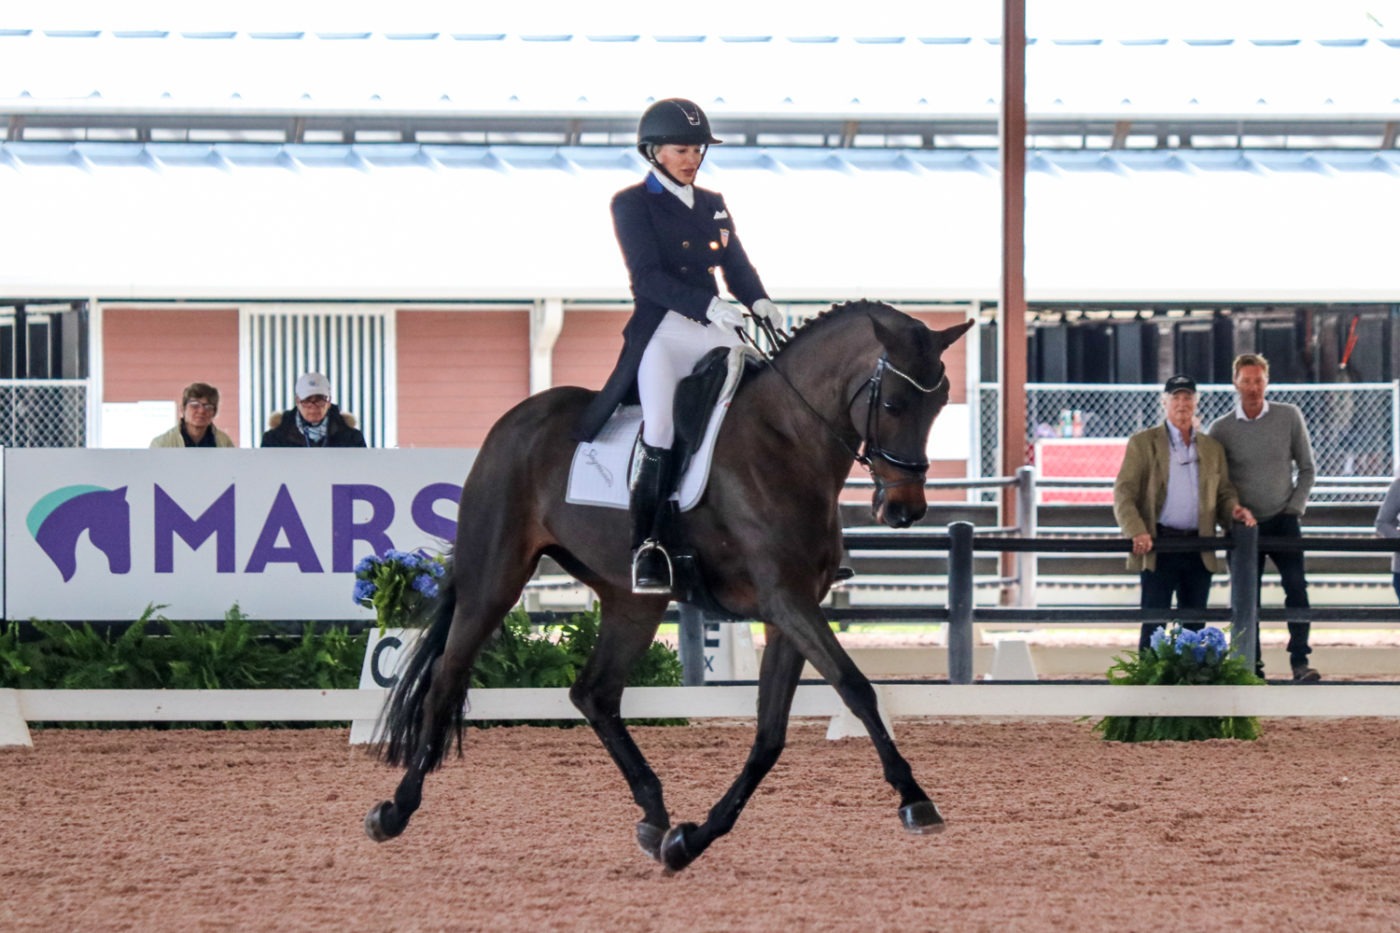 Marilyn Little and RF Scandalous broke into the teens with their dressage test. Samantha Clark Photo.